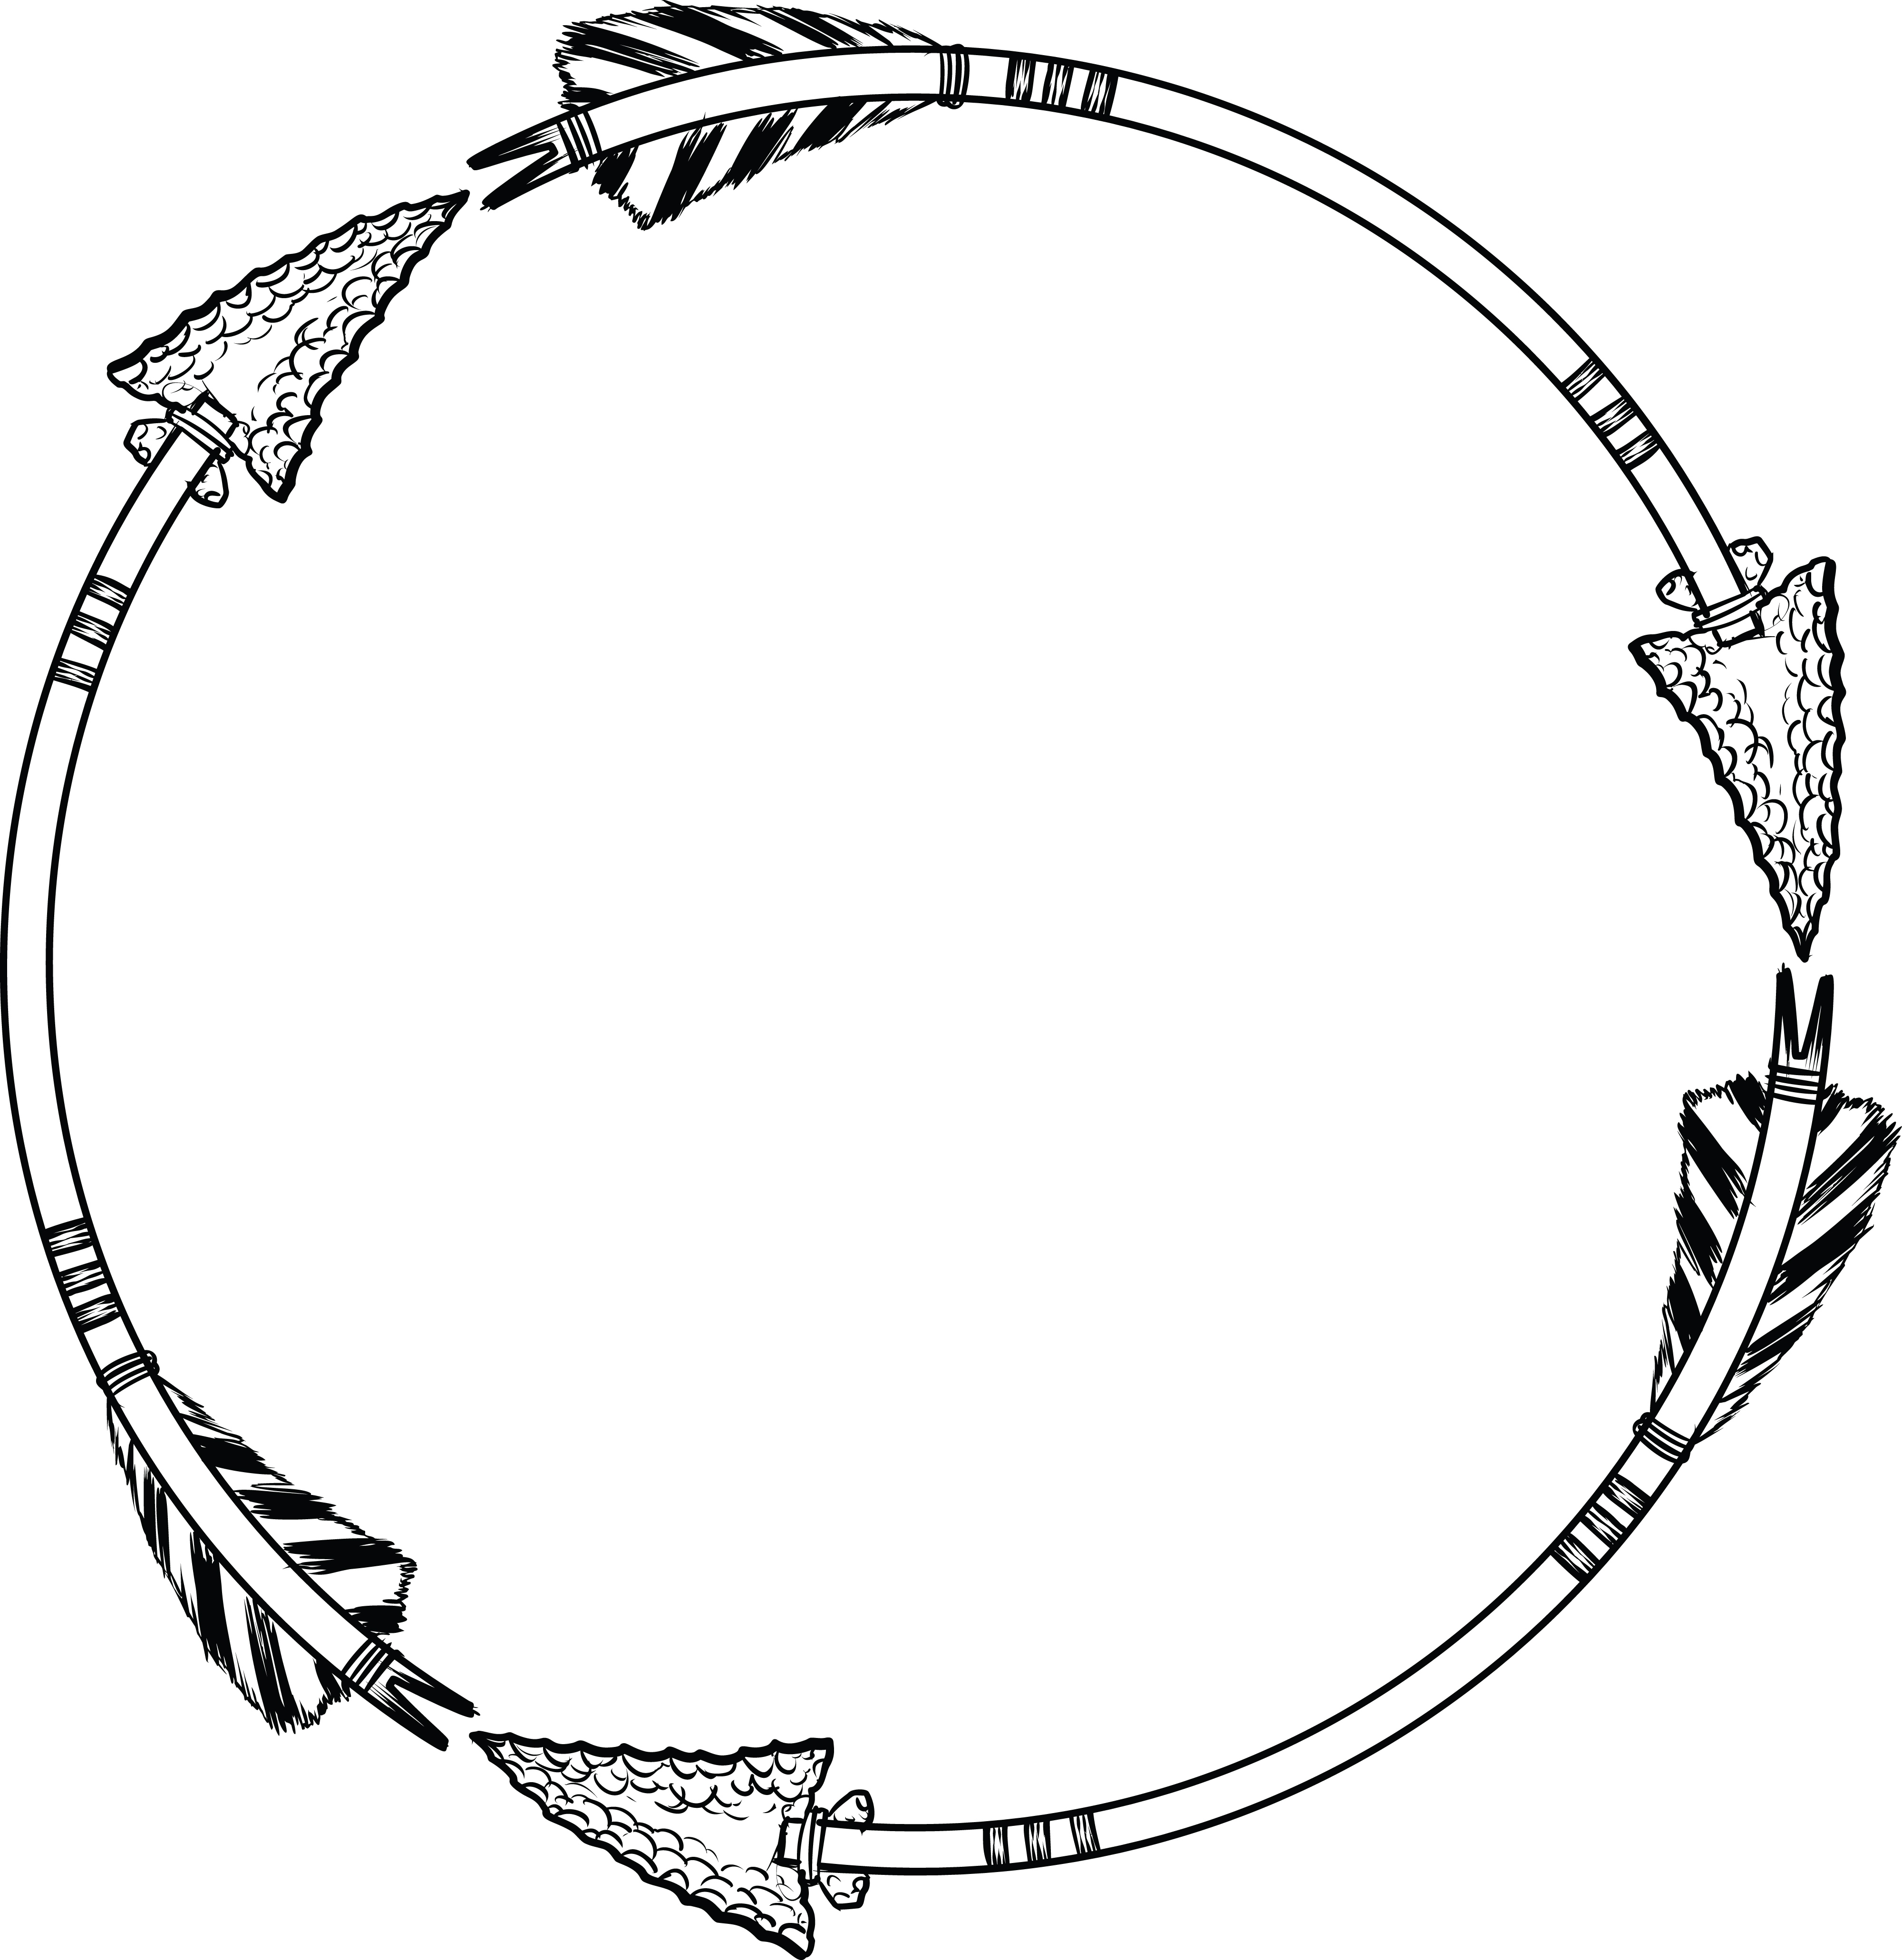 free clipart of a flint arrow circle shaped frame rh free clipartof com circle clipart of tree of life circus clipart for kids